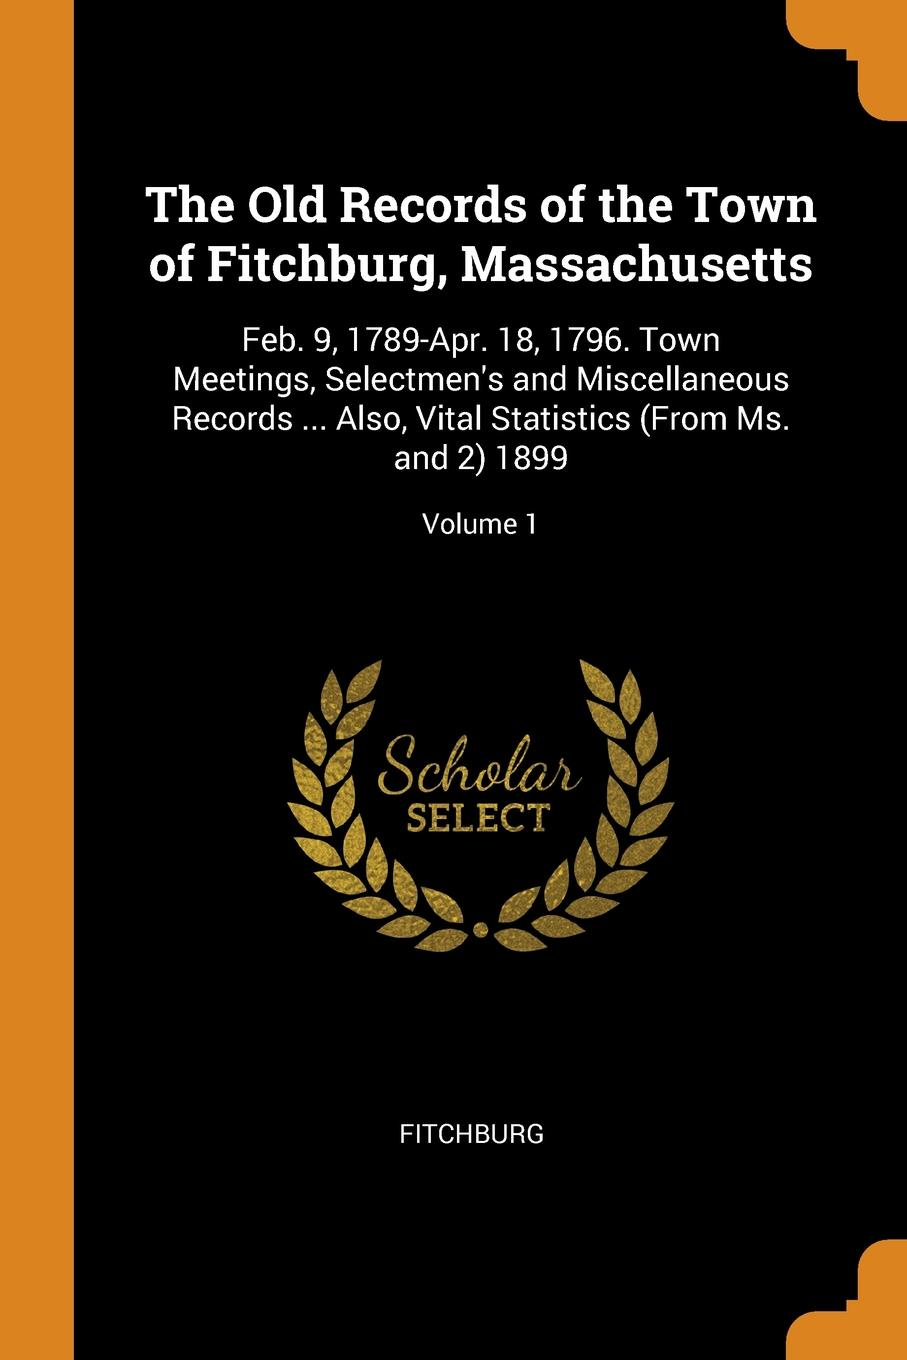 The Old Records of the Town of Fitchburg, Massachusetts. Feb. 9, 1789-Apr. 18, 1796. Town Meetings, Selectmen.s and Miscellaneous Records ... Also, Vital Statistics (From Ms. and 2) 1899; Volume 1. Fitchburg